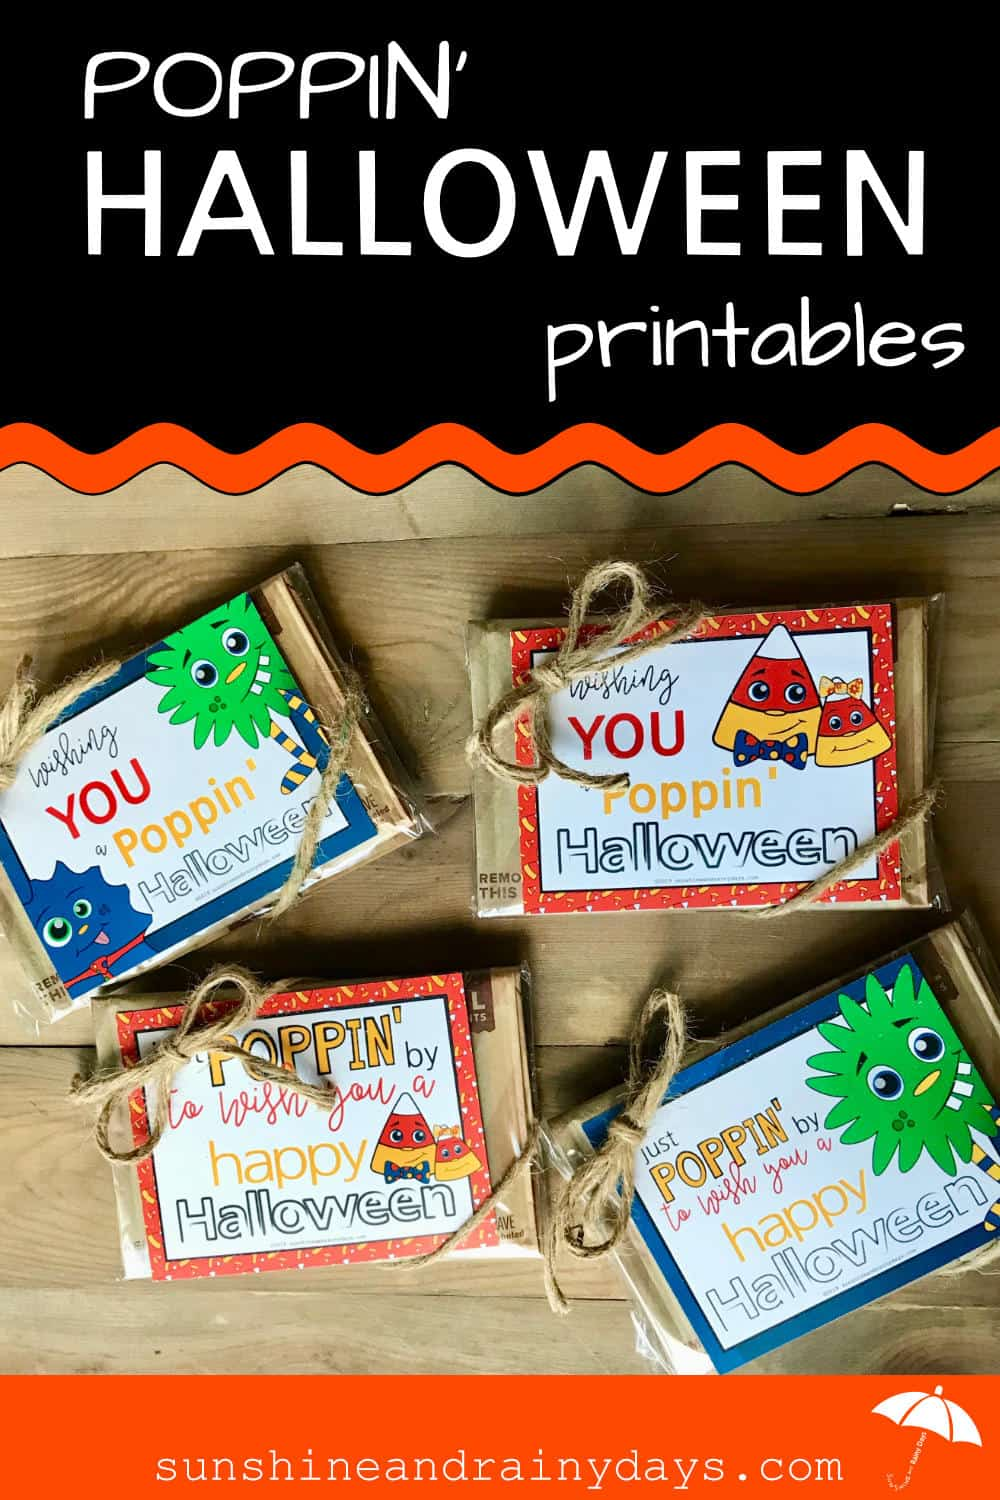 Poppin' By To Wish You A Happy Halloween Printable